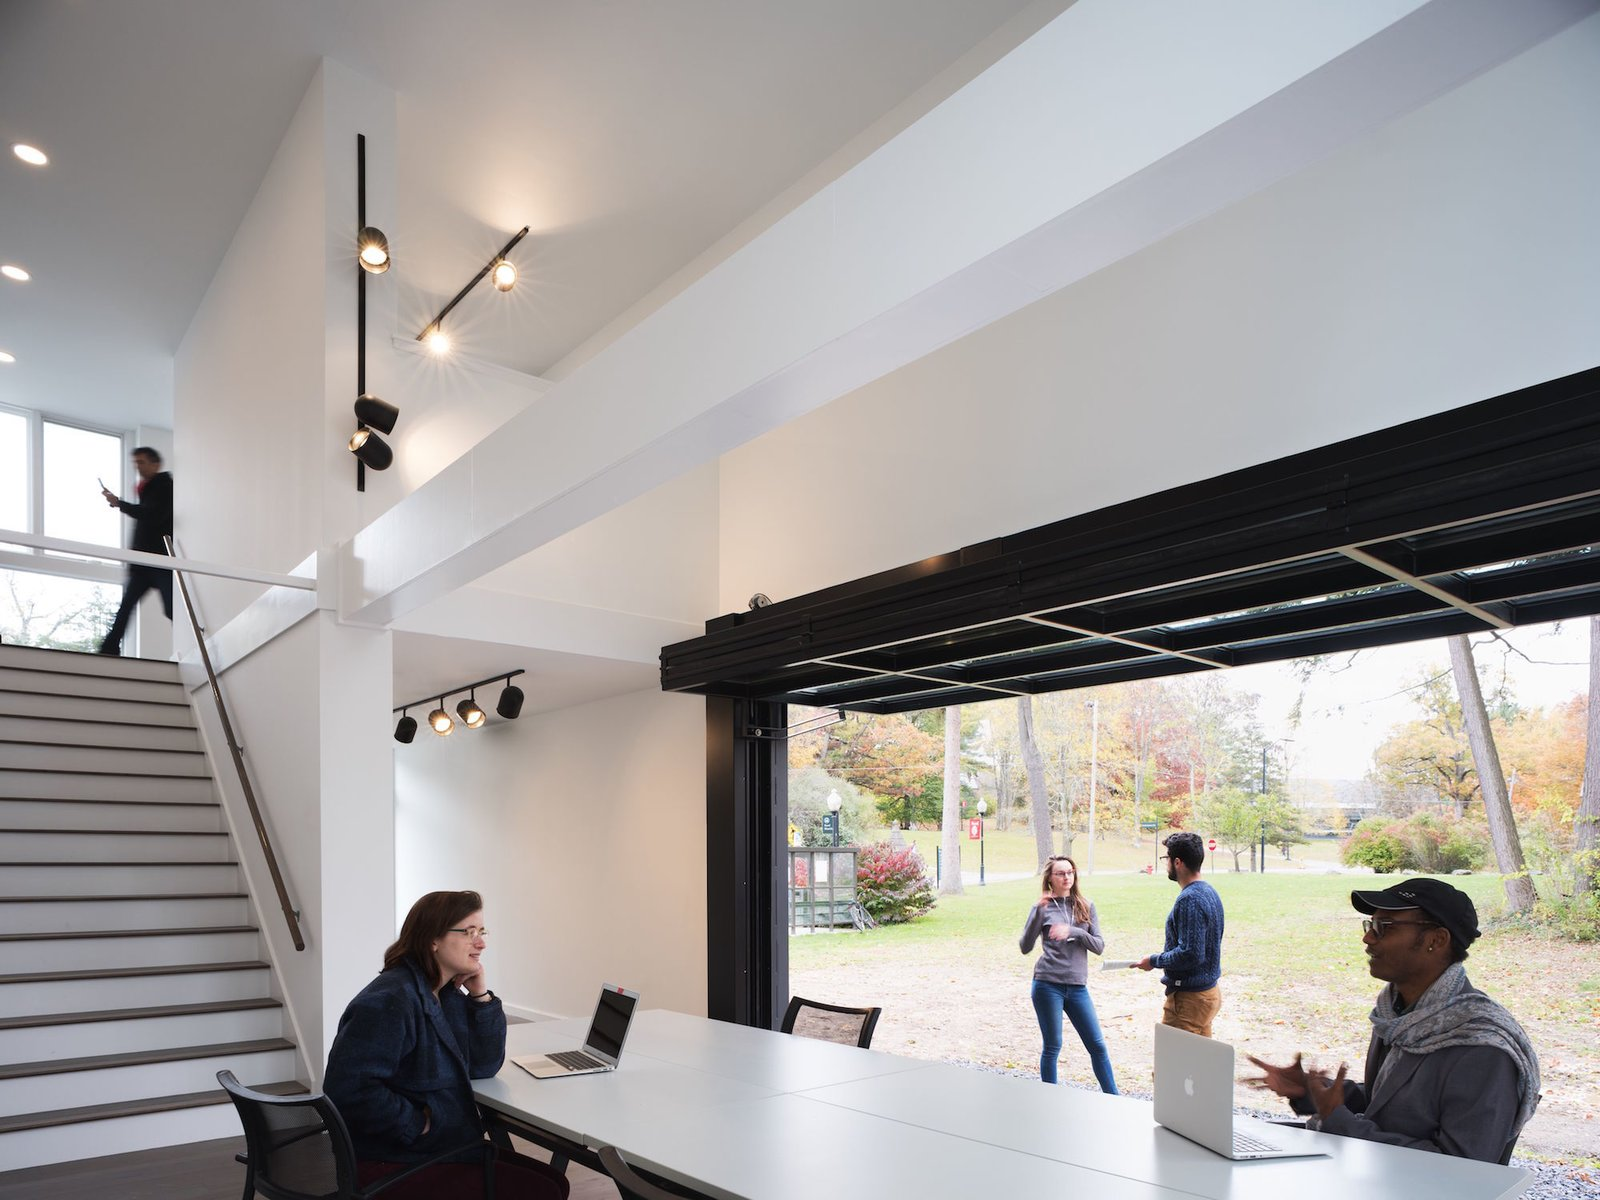 The space can be reserved by students, staff, and faculty of Bard College.